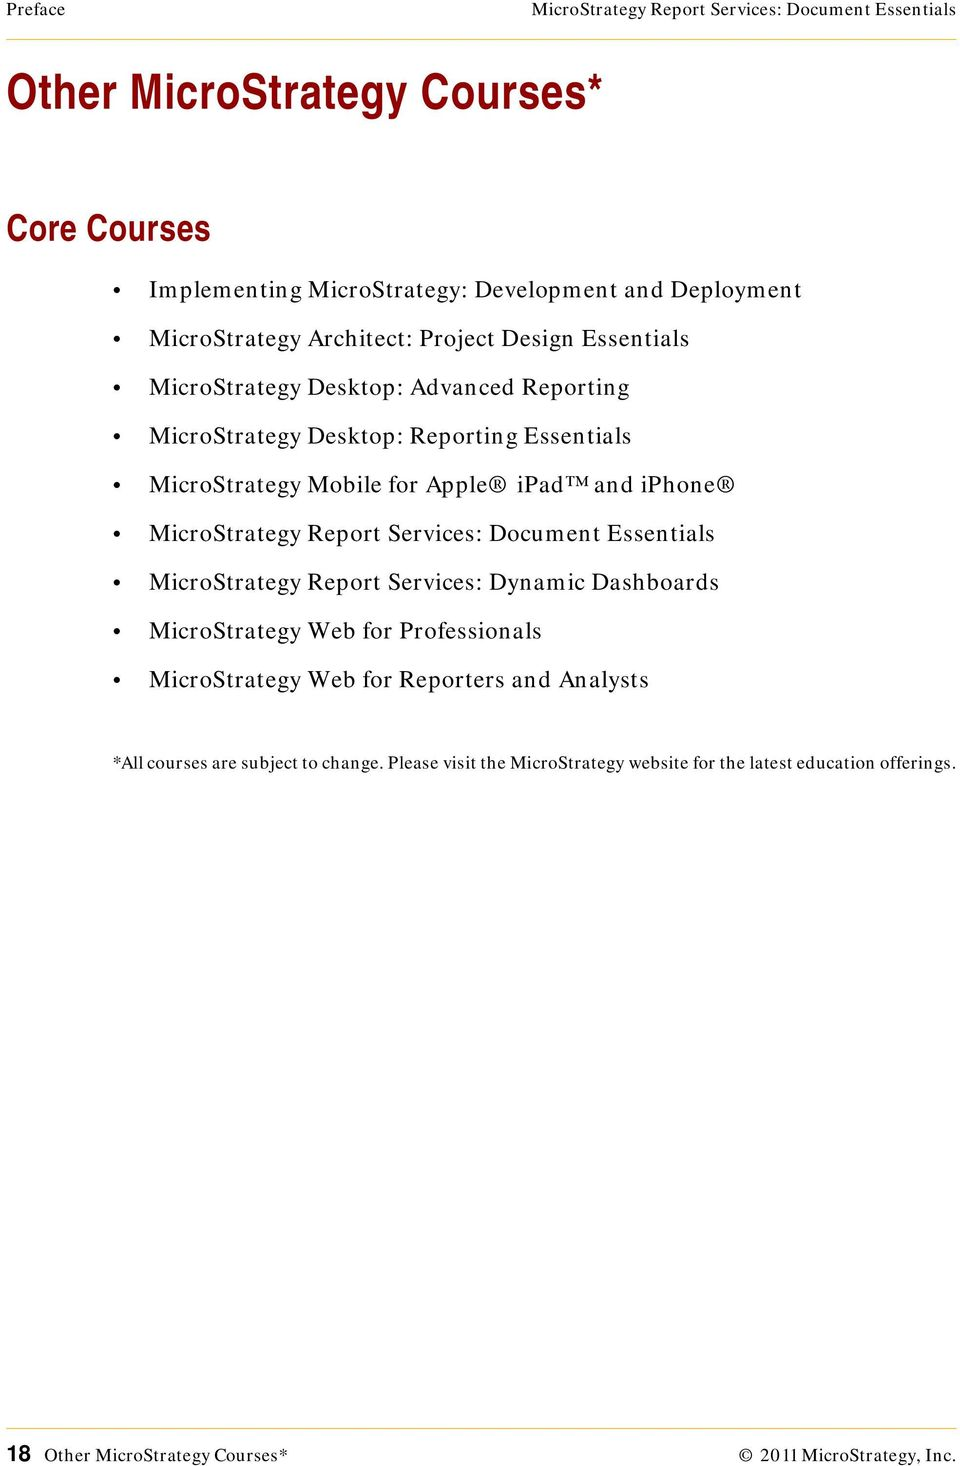 MicroStrategy Report Services: Document Essentials MicroStrategy Report Services: Dynamic Dashboards MicroStrategy Web for Professionals MicroStrategy Web for Reporters and